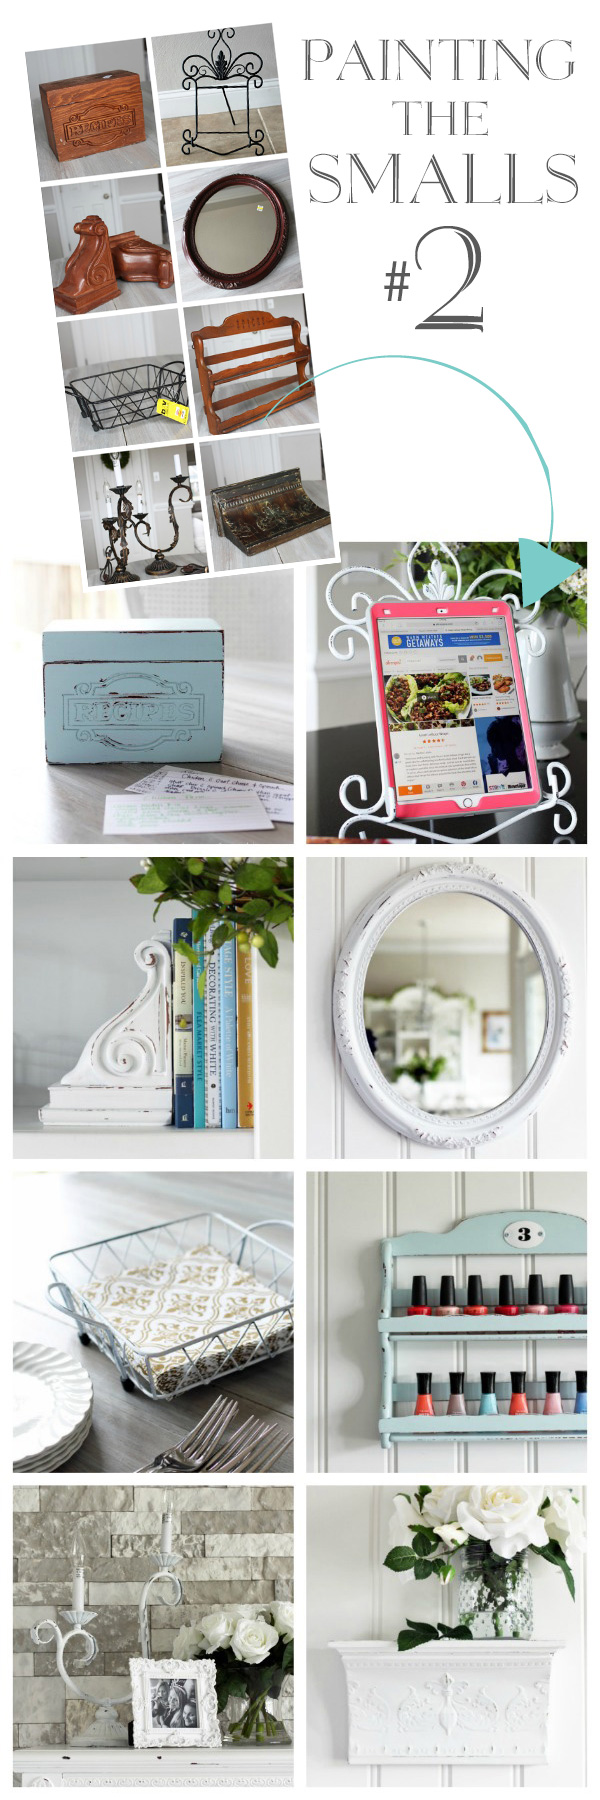 Eight quick thrift store makeovers!